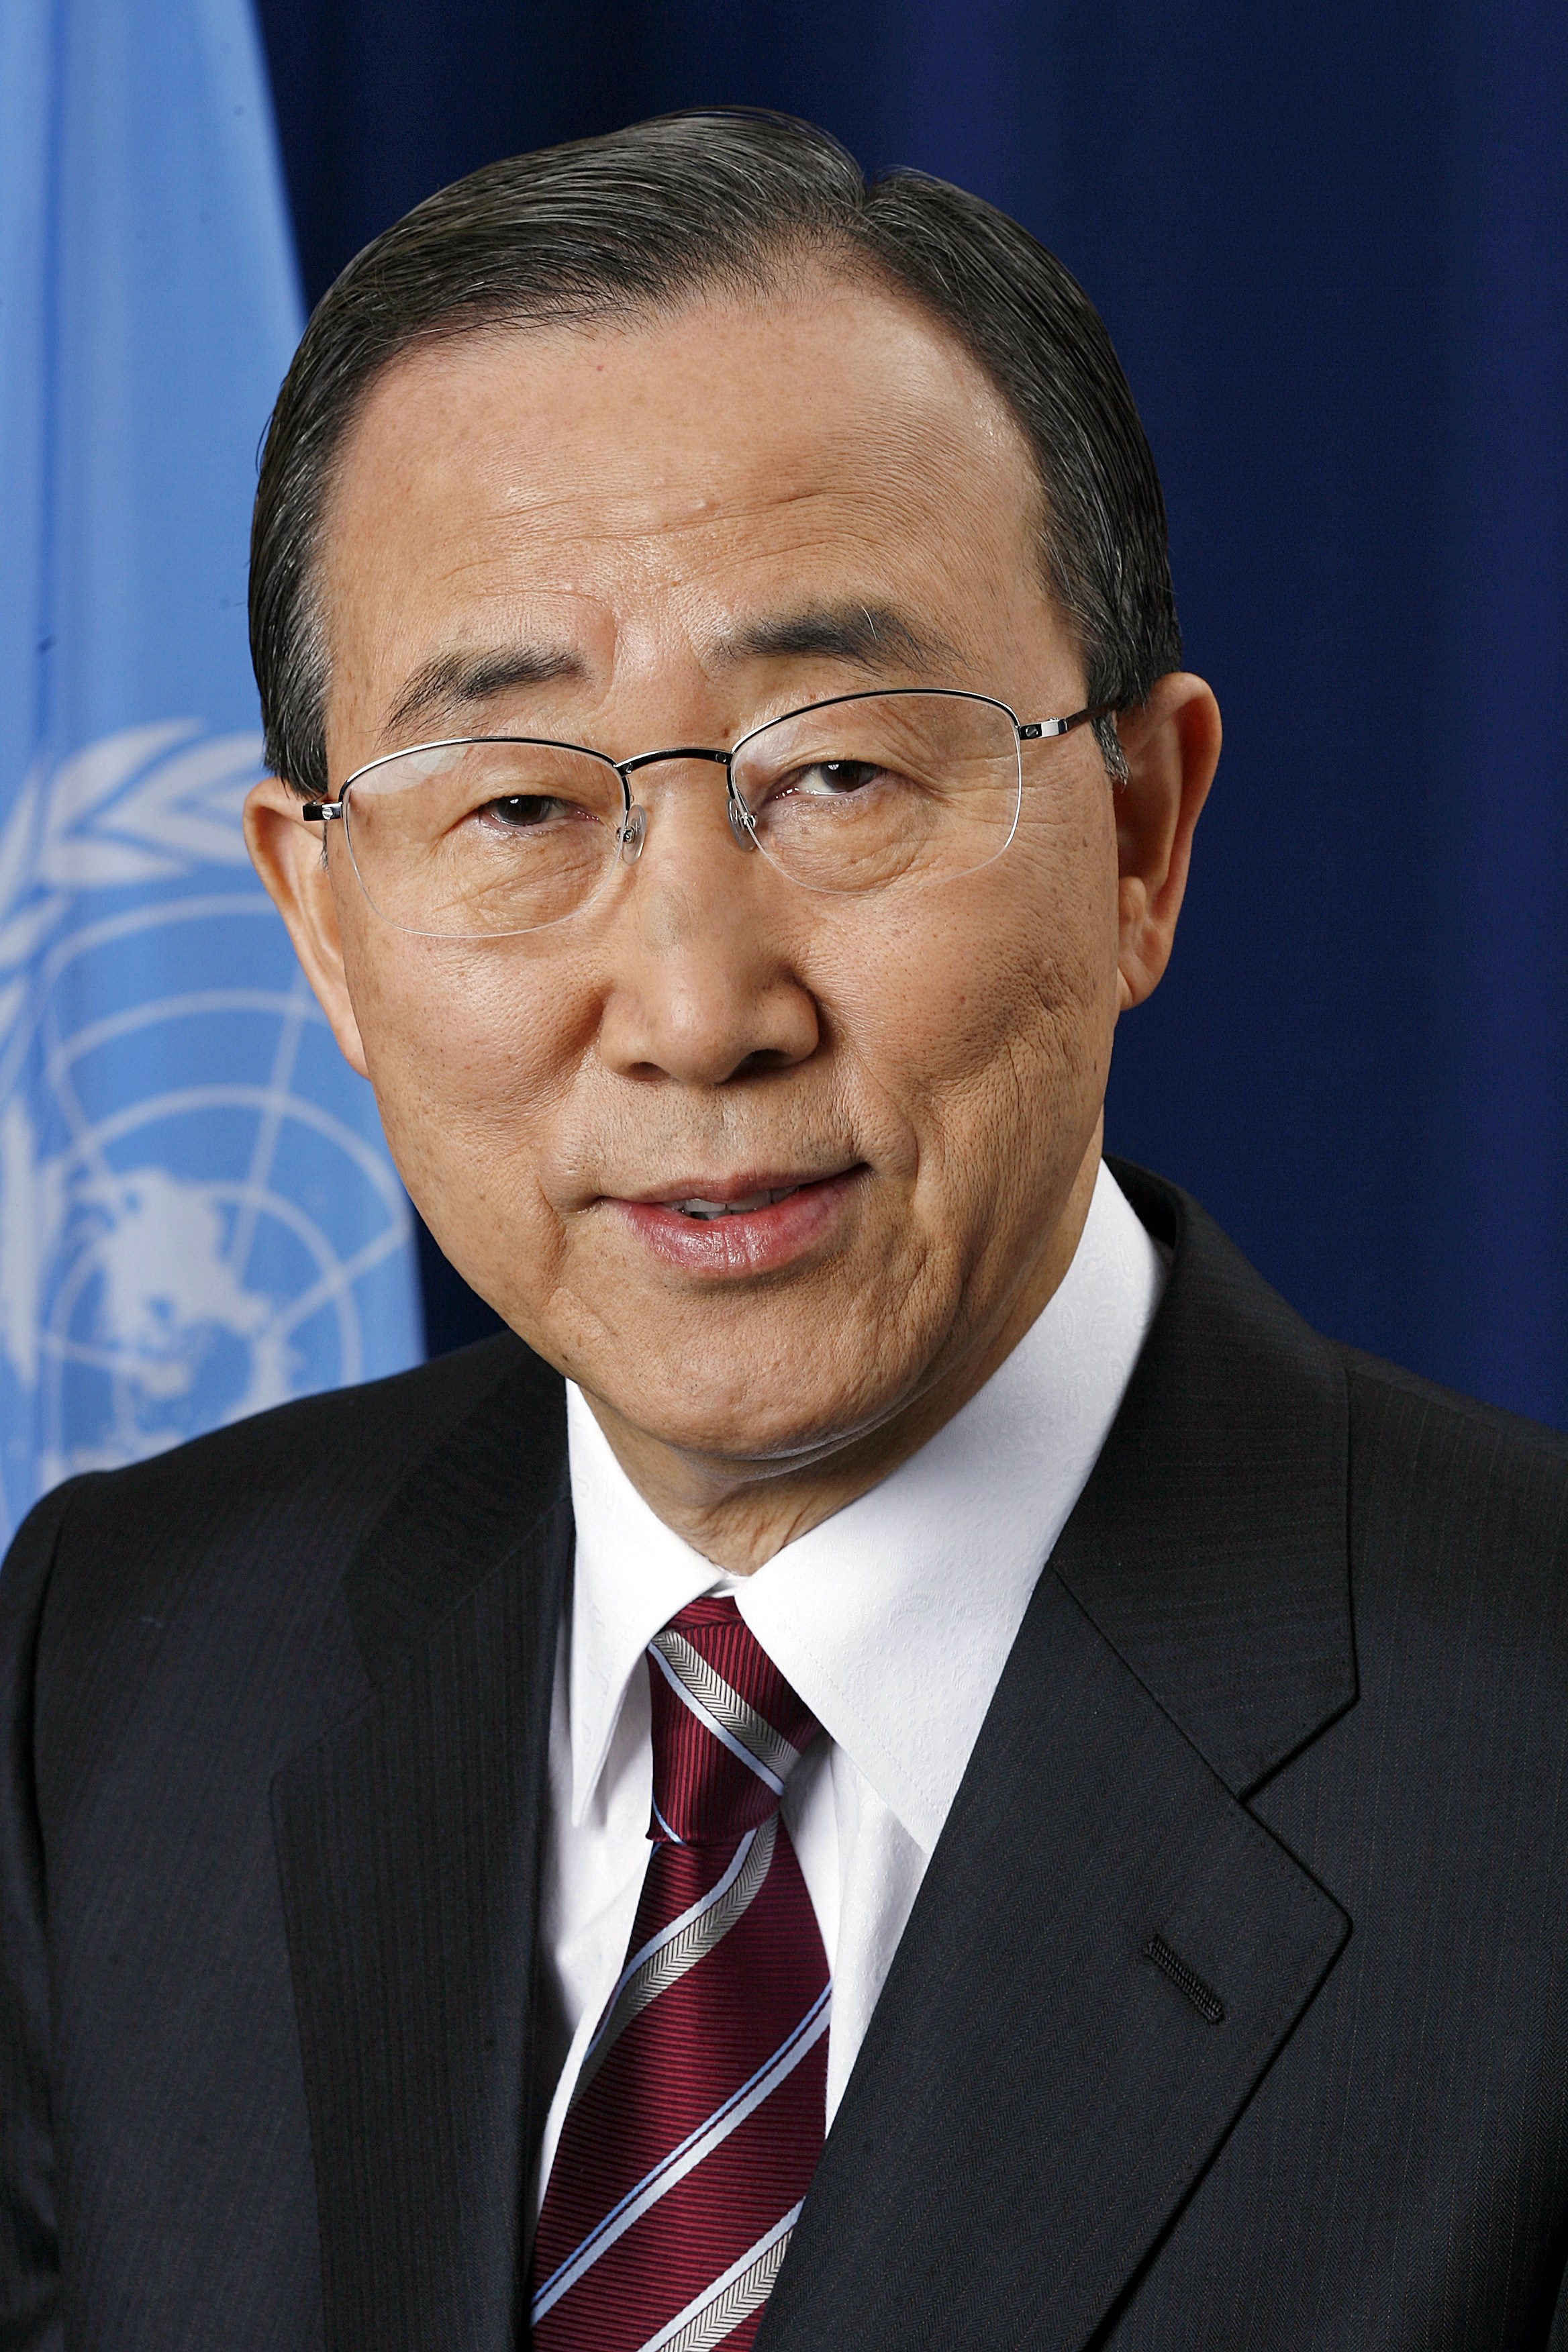 Ban Ki-moon, 8th Secretary-General of the United Nations ...